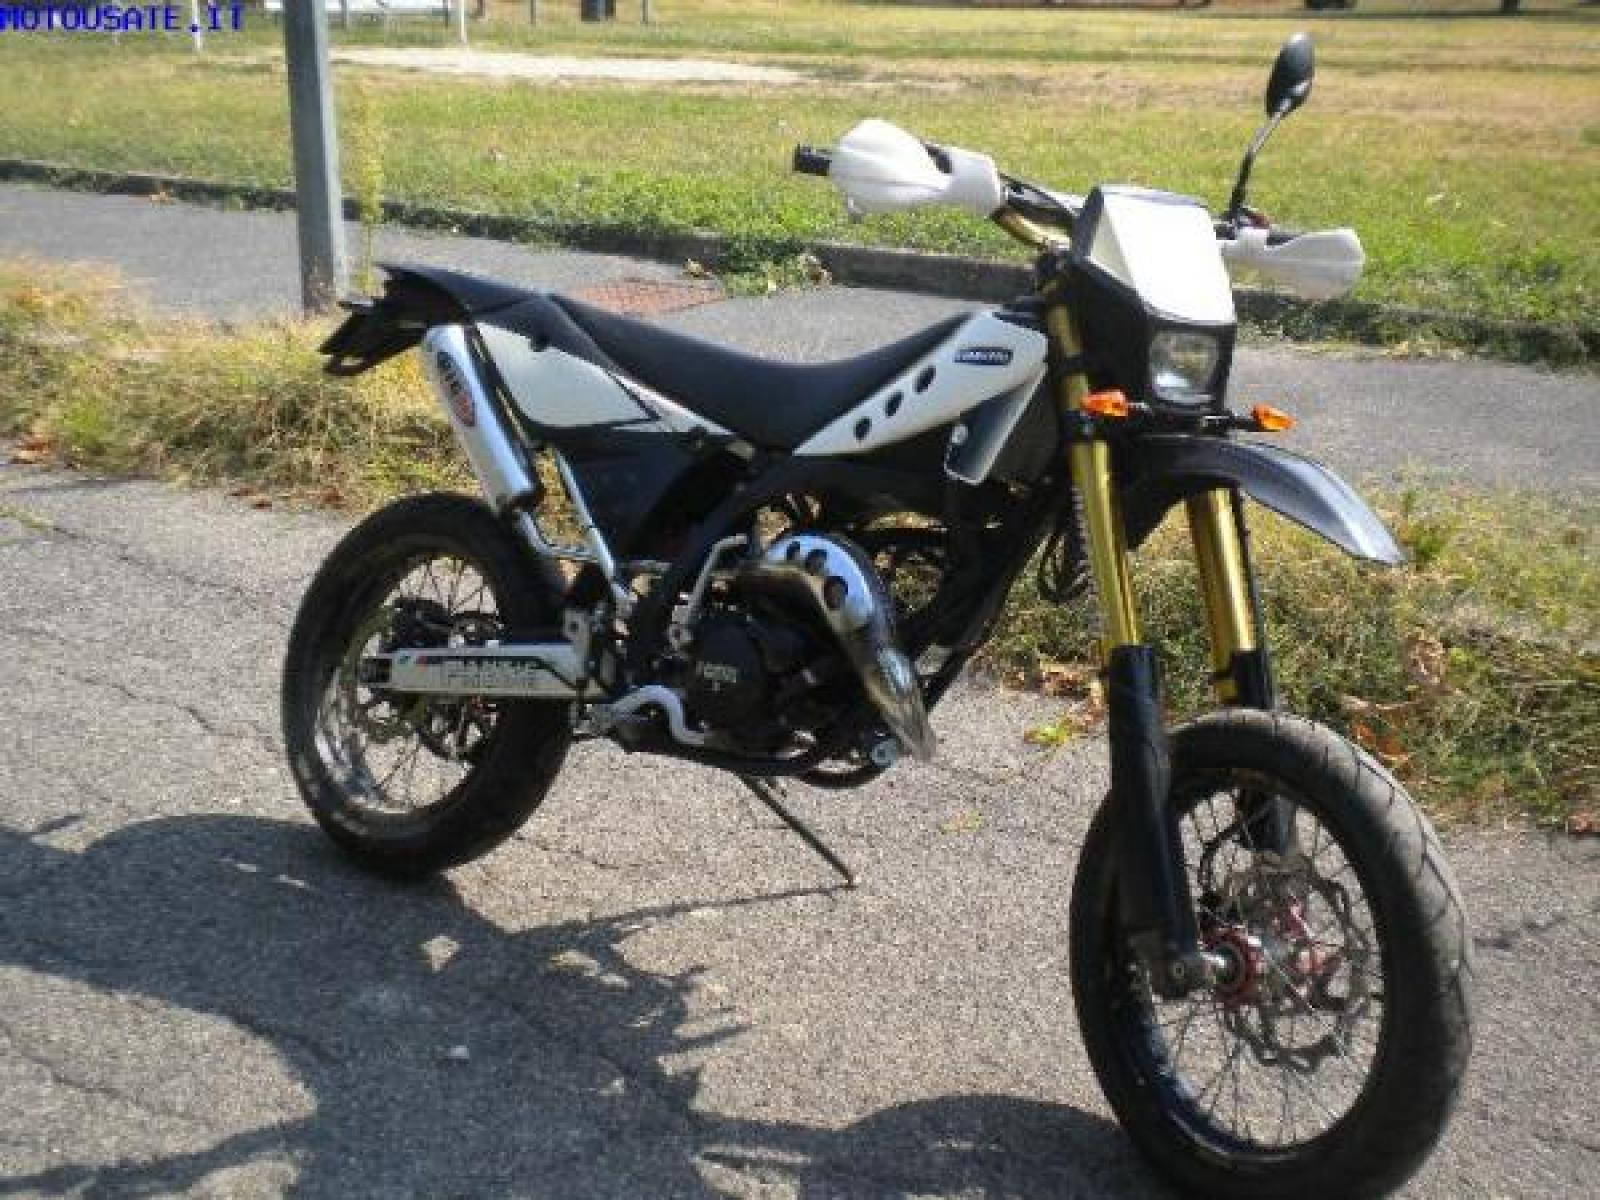 Fantic Caballero Supersei Motard 125 images #71131